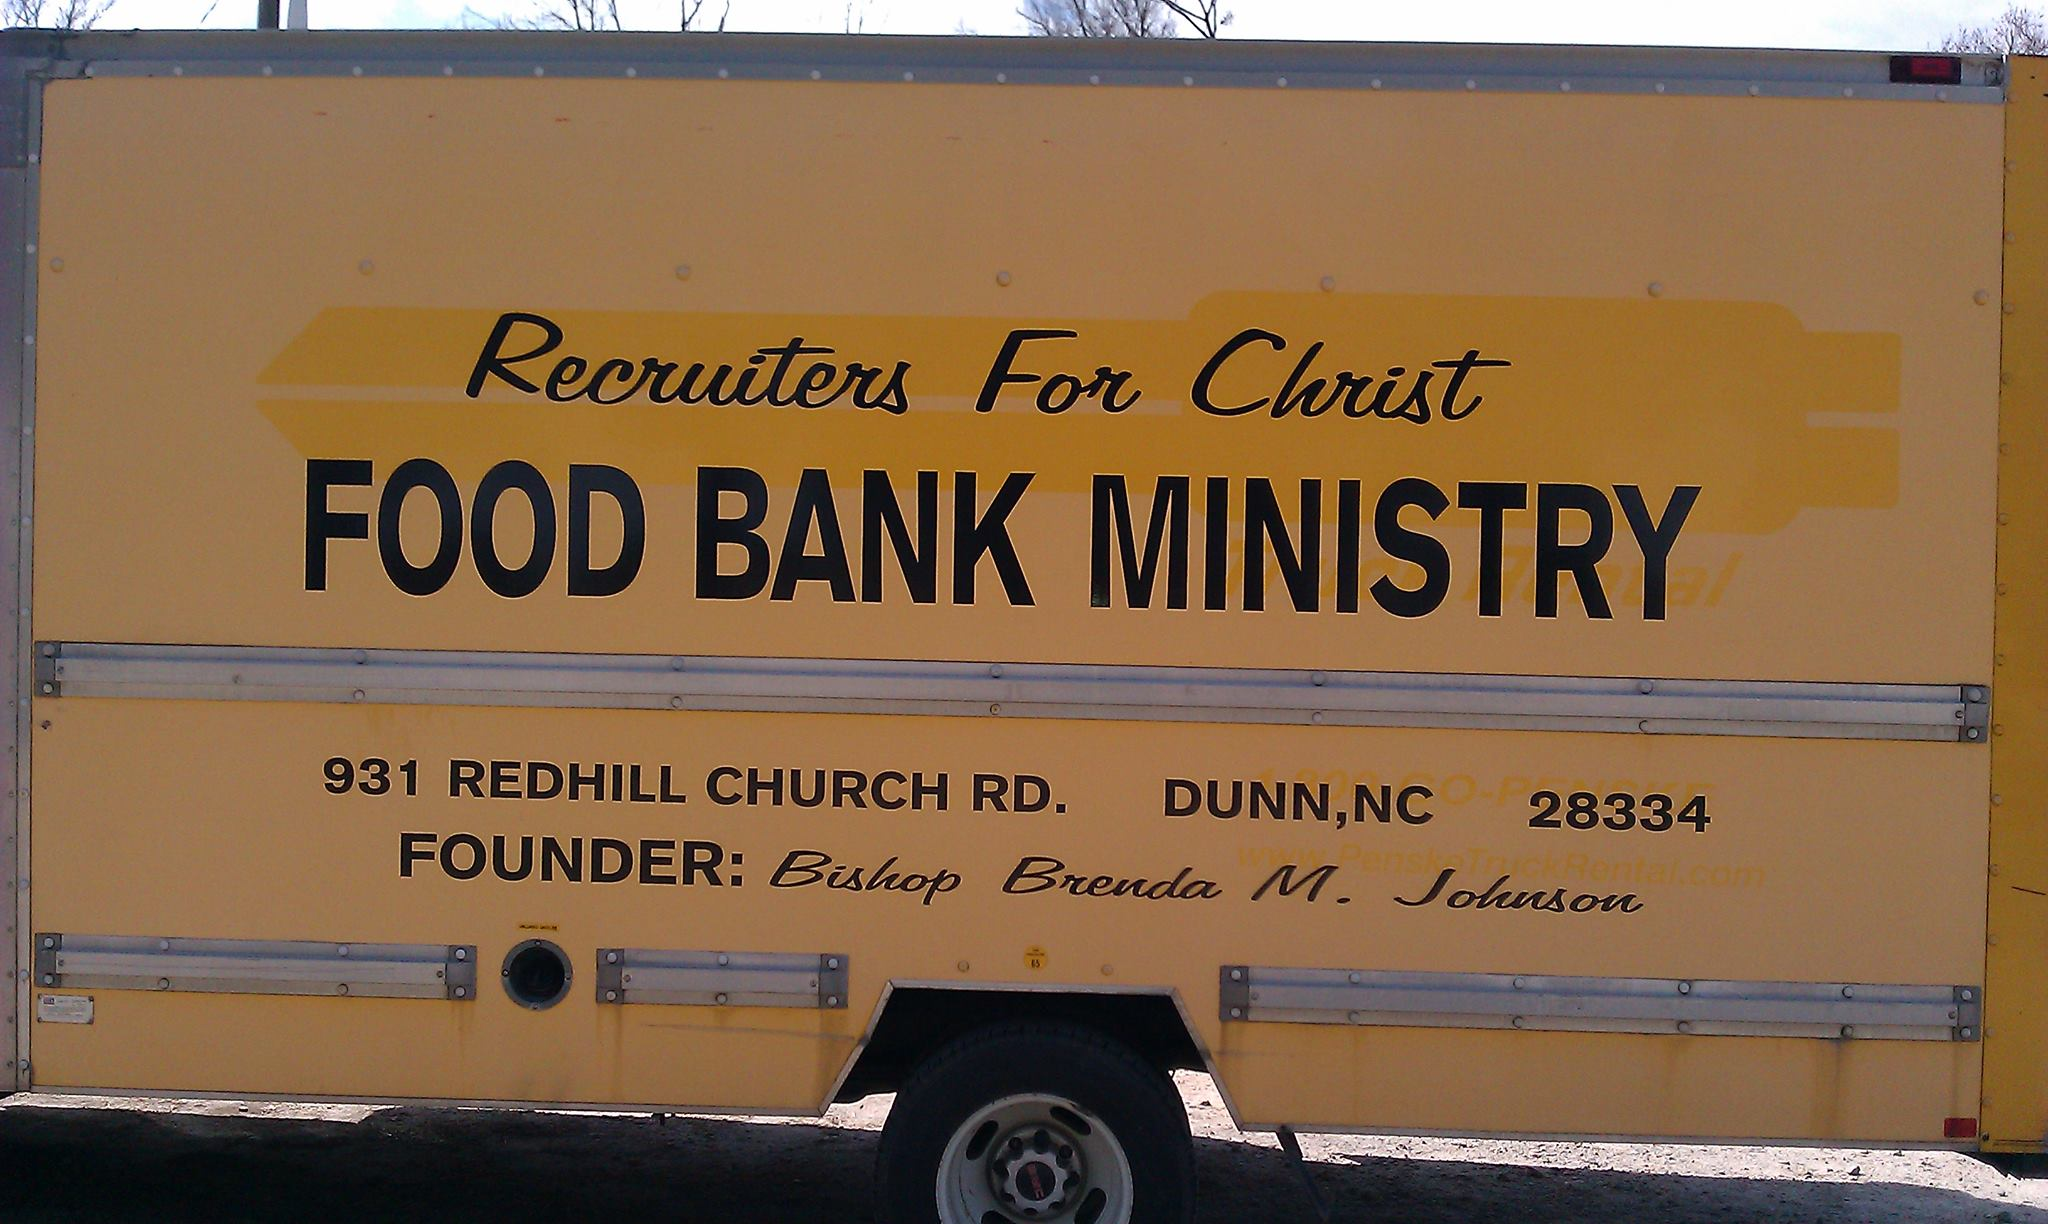 Recruiters for Christ Church